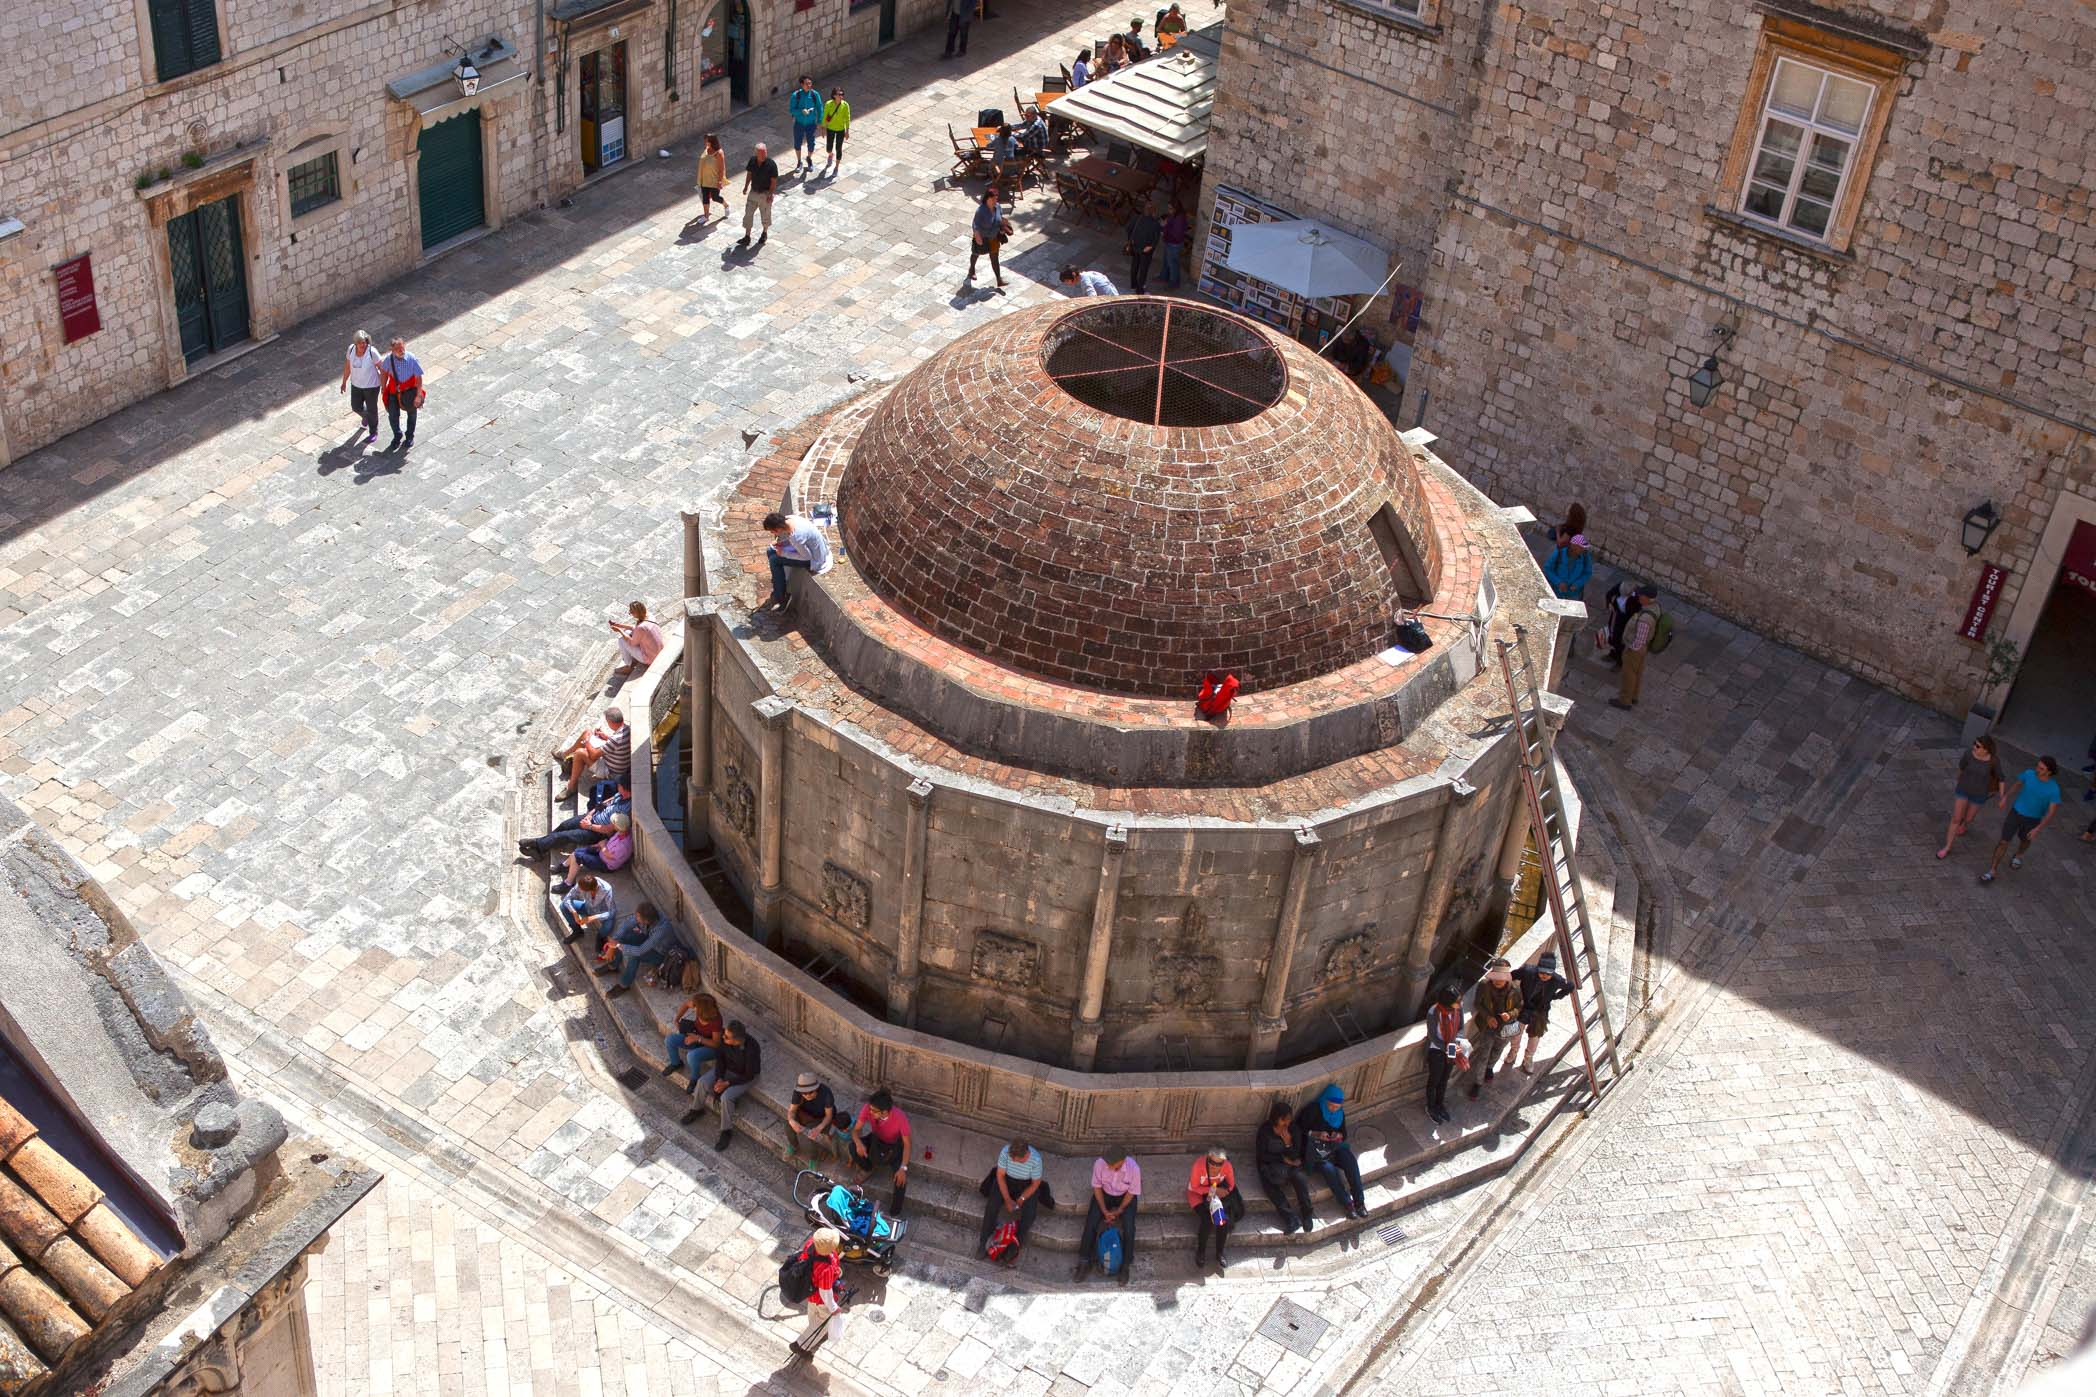 View of The Large Onofrios Fountain from the walls of Dubrovnik